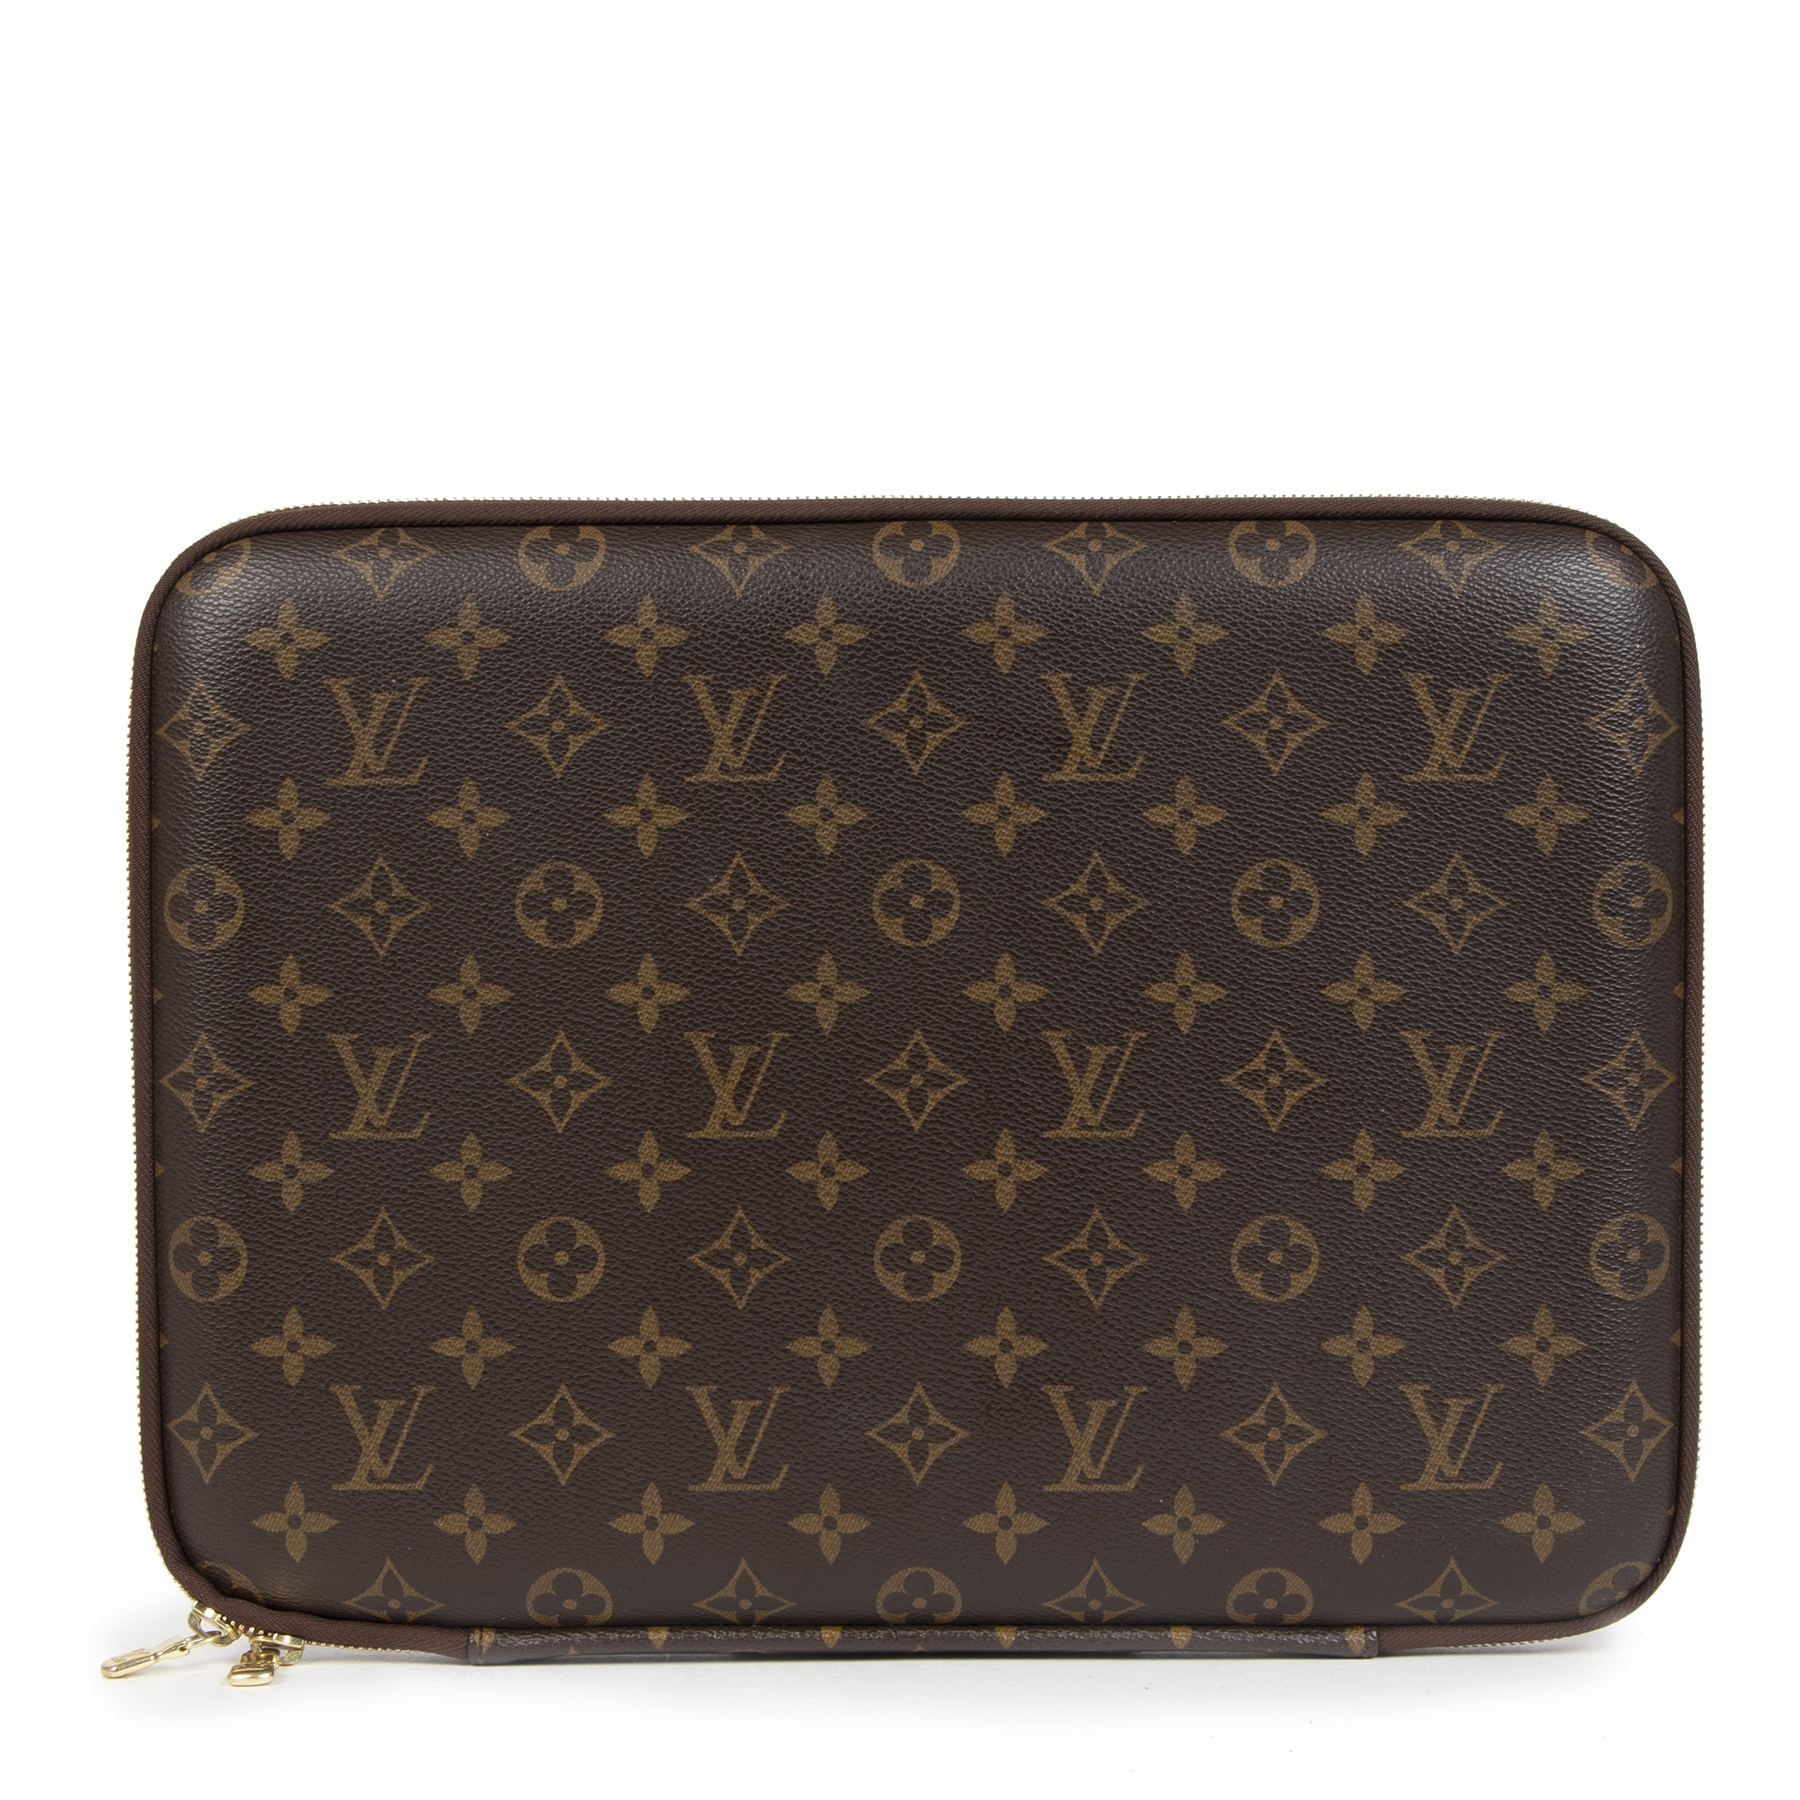 Authentic secondhand Louis Vuitton Monogram 13inch Laptop Sleeve designer accessories designer brands fashion luxury vintage webshop safe secure online shopping worldwide shipping delivery